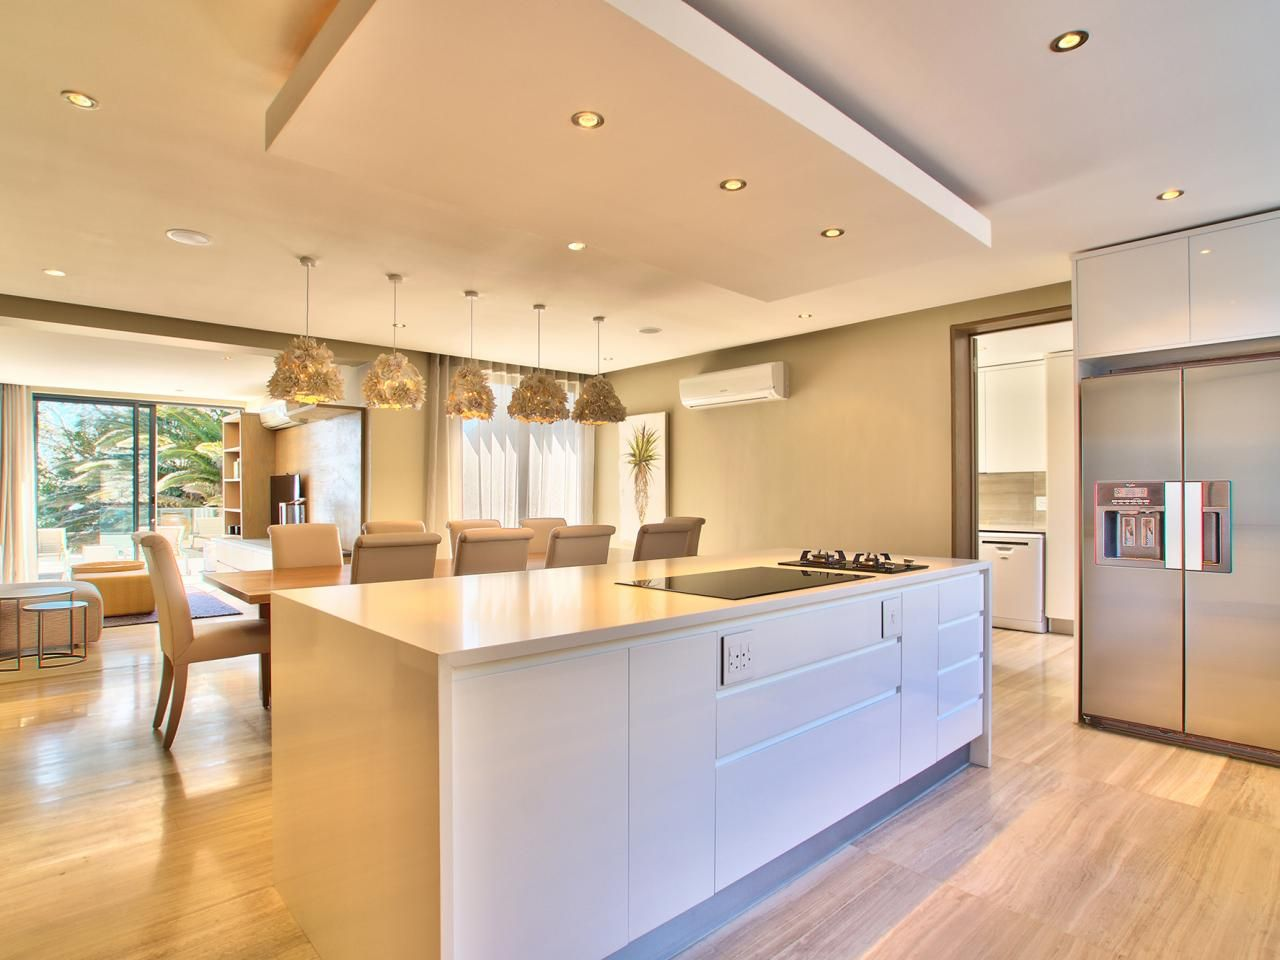 Kitchen Ceiling Ideas Cost To Redo 6 Suspended Decors Design For 2018 Best